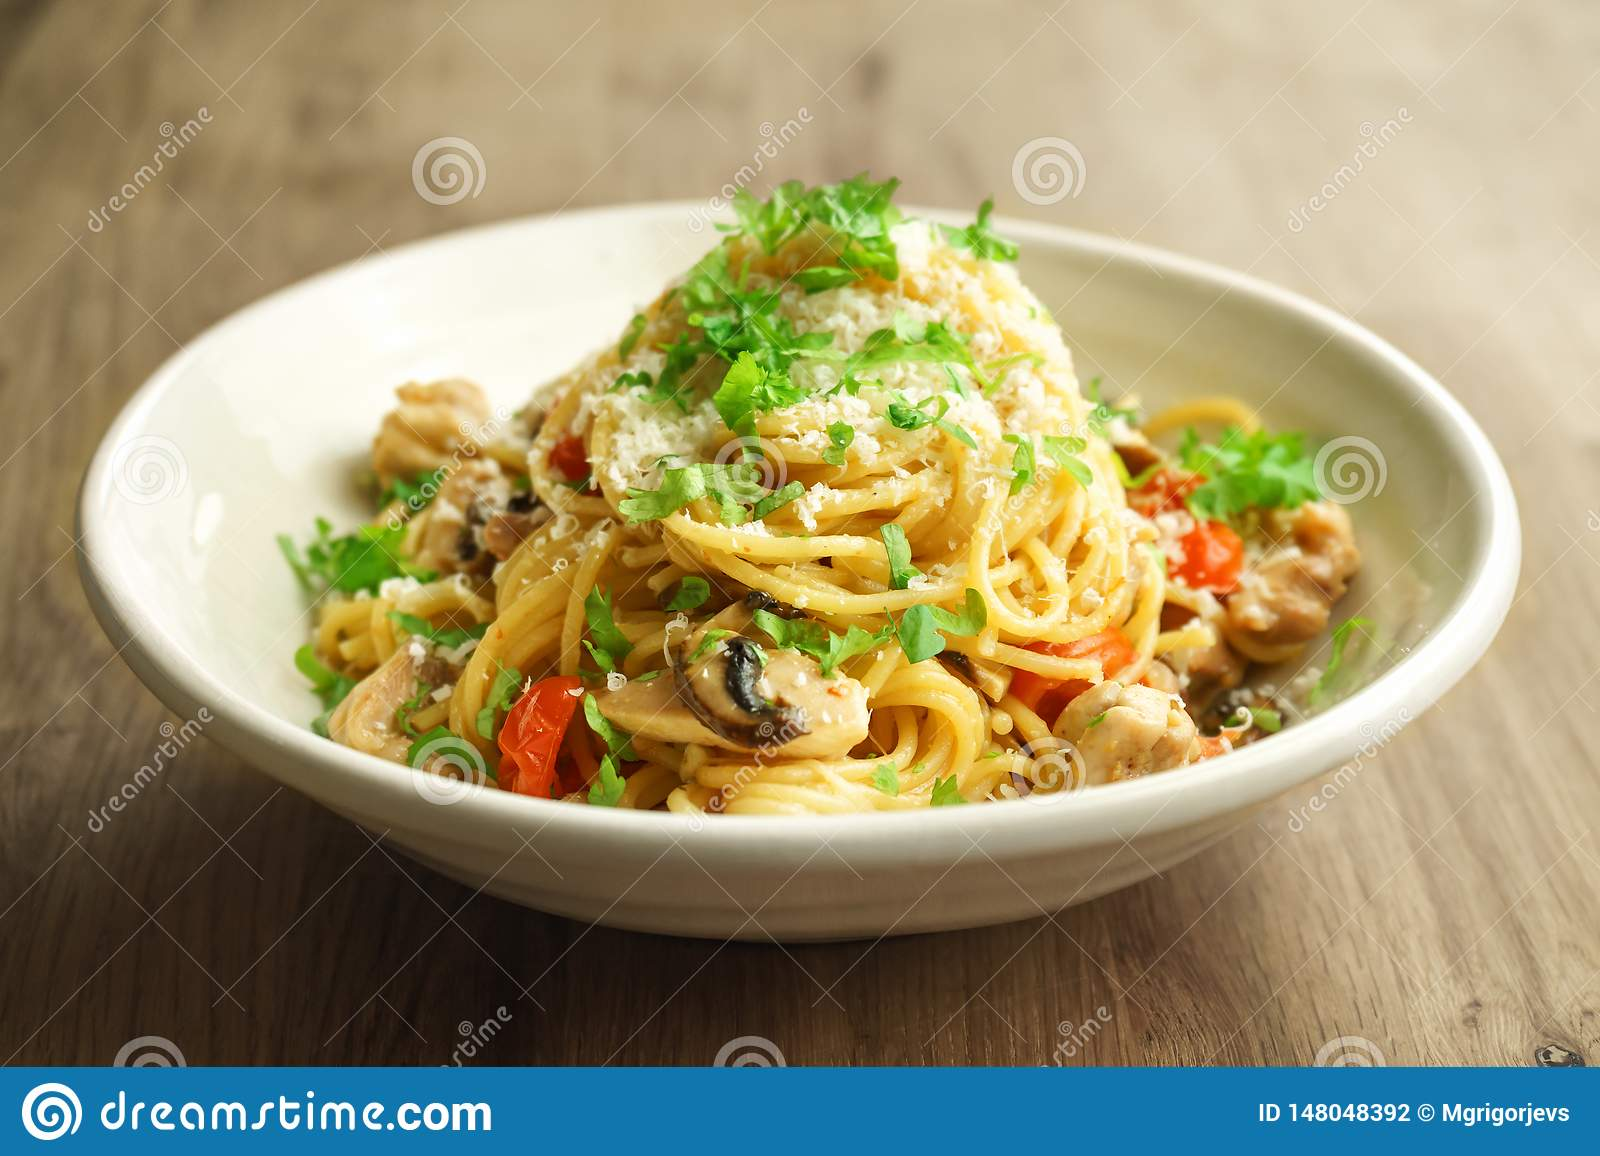 Spagetti one pot pasta with chicken, mushrooms and shallots in a creamy sauce.